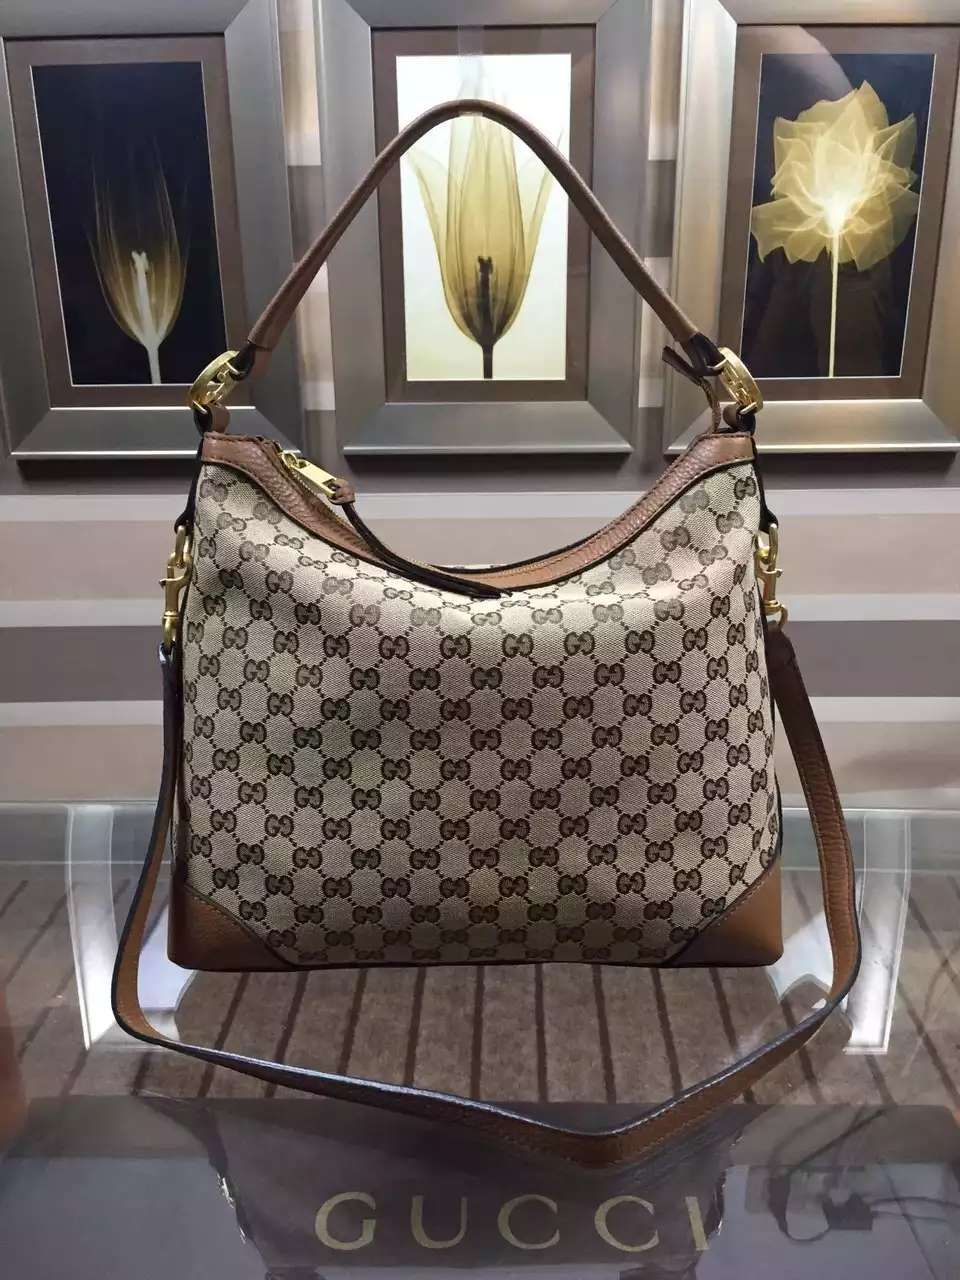 gucci Bag, ID : 50298(FORSALE:a@yybags.com), gucci ladies backpack, gucci external frame backpack, gucci discount handbags, gucci ladies bags brands, gucci backpacking backpack, gucci discount purses, gucci store in boston, gucci trolley backpack, gucci handbags cheap, online gucci shop, gucci denim handbags, gucci america website #gucciBag #gucci #gucci #on